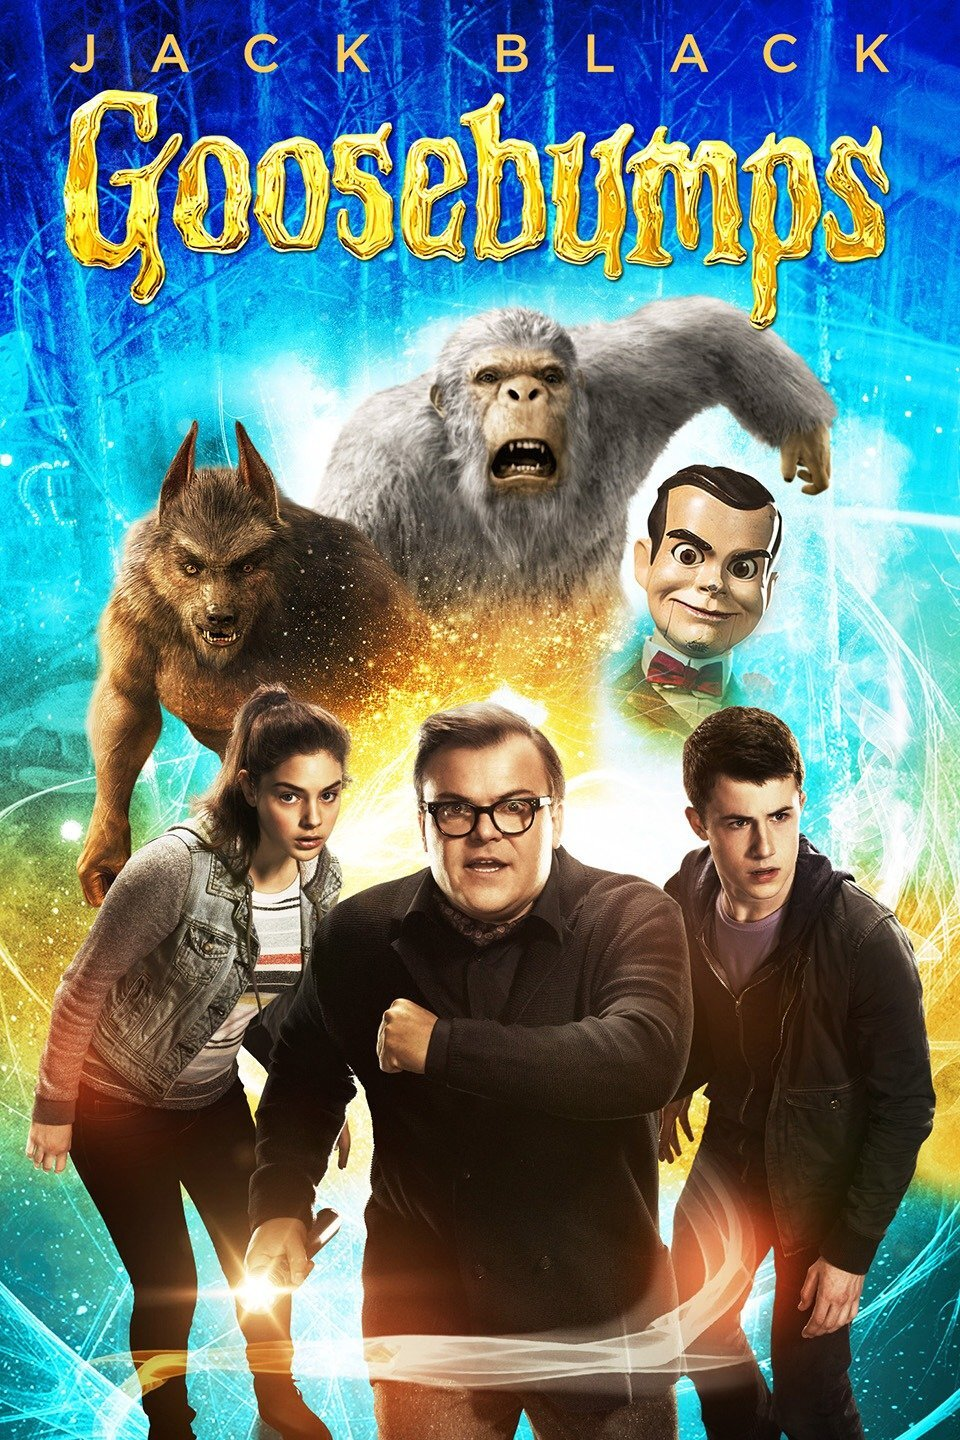 Goosebumps - For the first time ever the Roxy is pleased to bring you FREE Fall Break Movies! Seats are first come first serve. Doors open at 9:20 A.M.! Please remember to pick up a ticket upon your arrival.In the spirit of the season, we will also be offering some fun activities in our lobby during these showings including some early Trick-or-Treating! children's Costumes are welcome. Face mask are prohibited.Goosebumps (PG) (2015)- Upset about moving from the big city to a small town, young Zach Cooper finds a silver lining when he meets his beautiful neighbor Hannah. The teen is surprised to learn that Hannah's mysterious father is R.L. Stine, the famous author of the best-selling